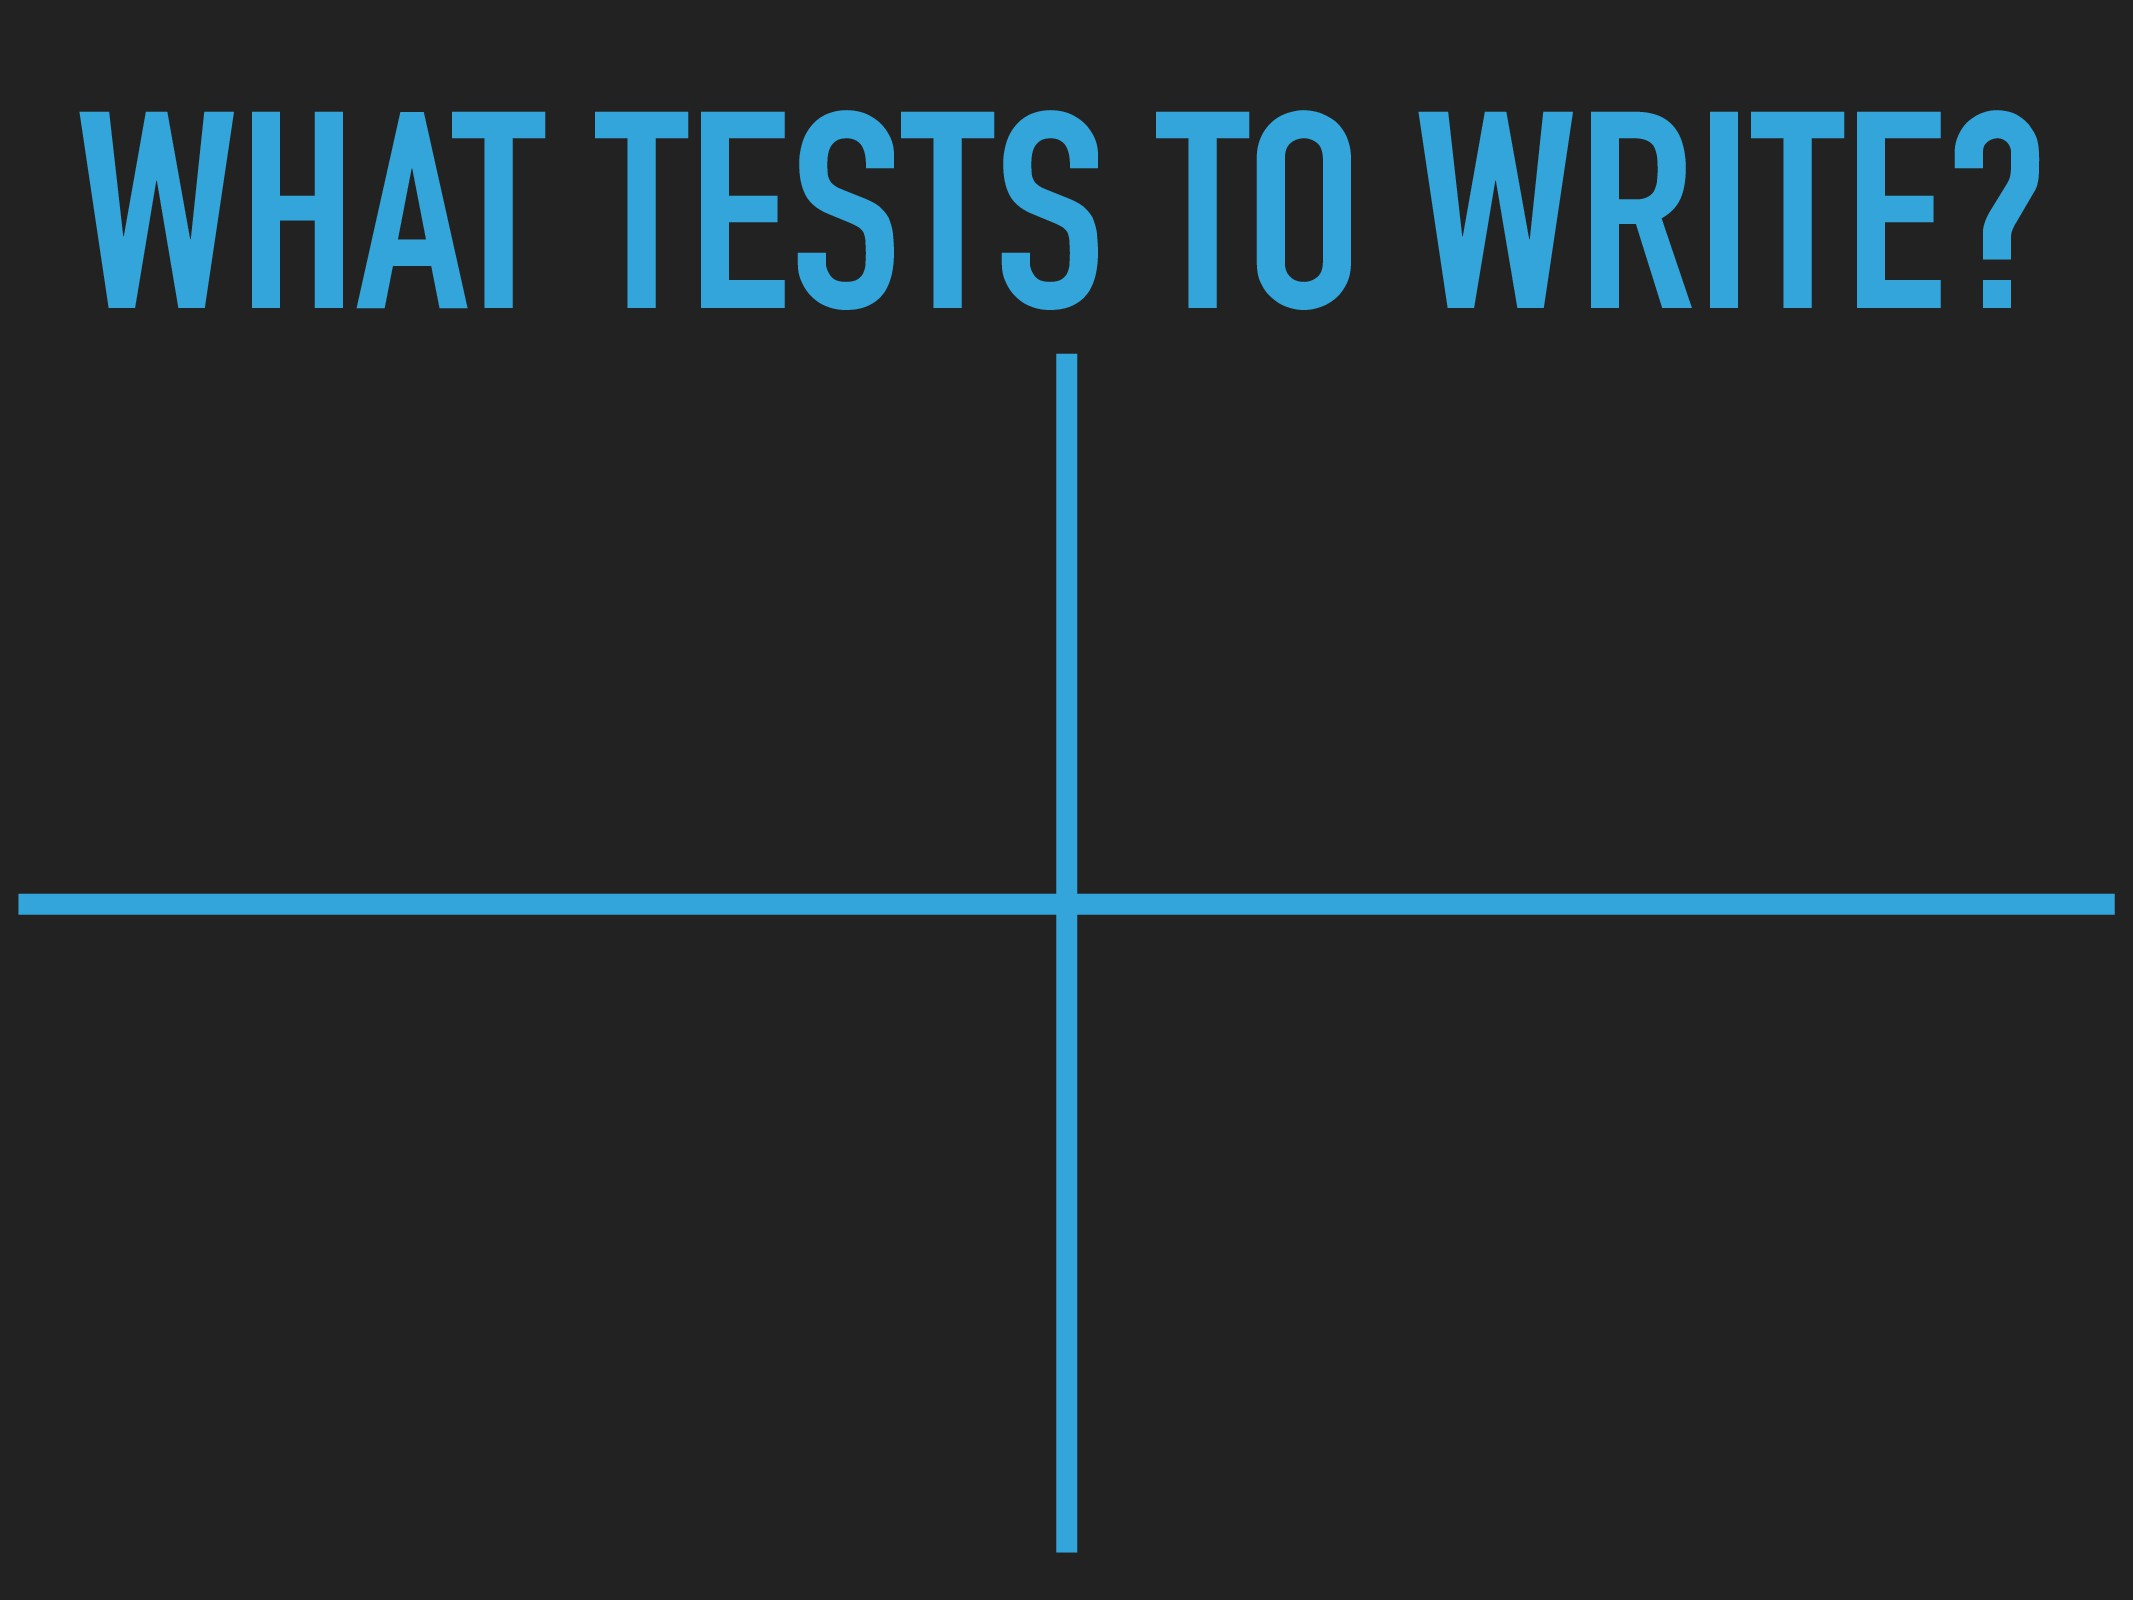 WHAT TESTS TO WRITE?